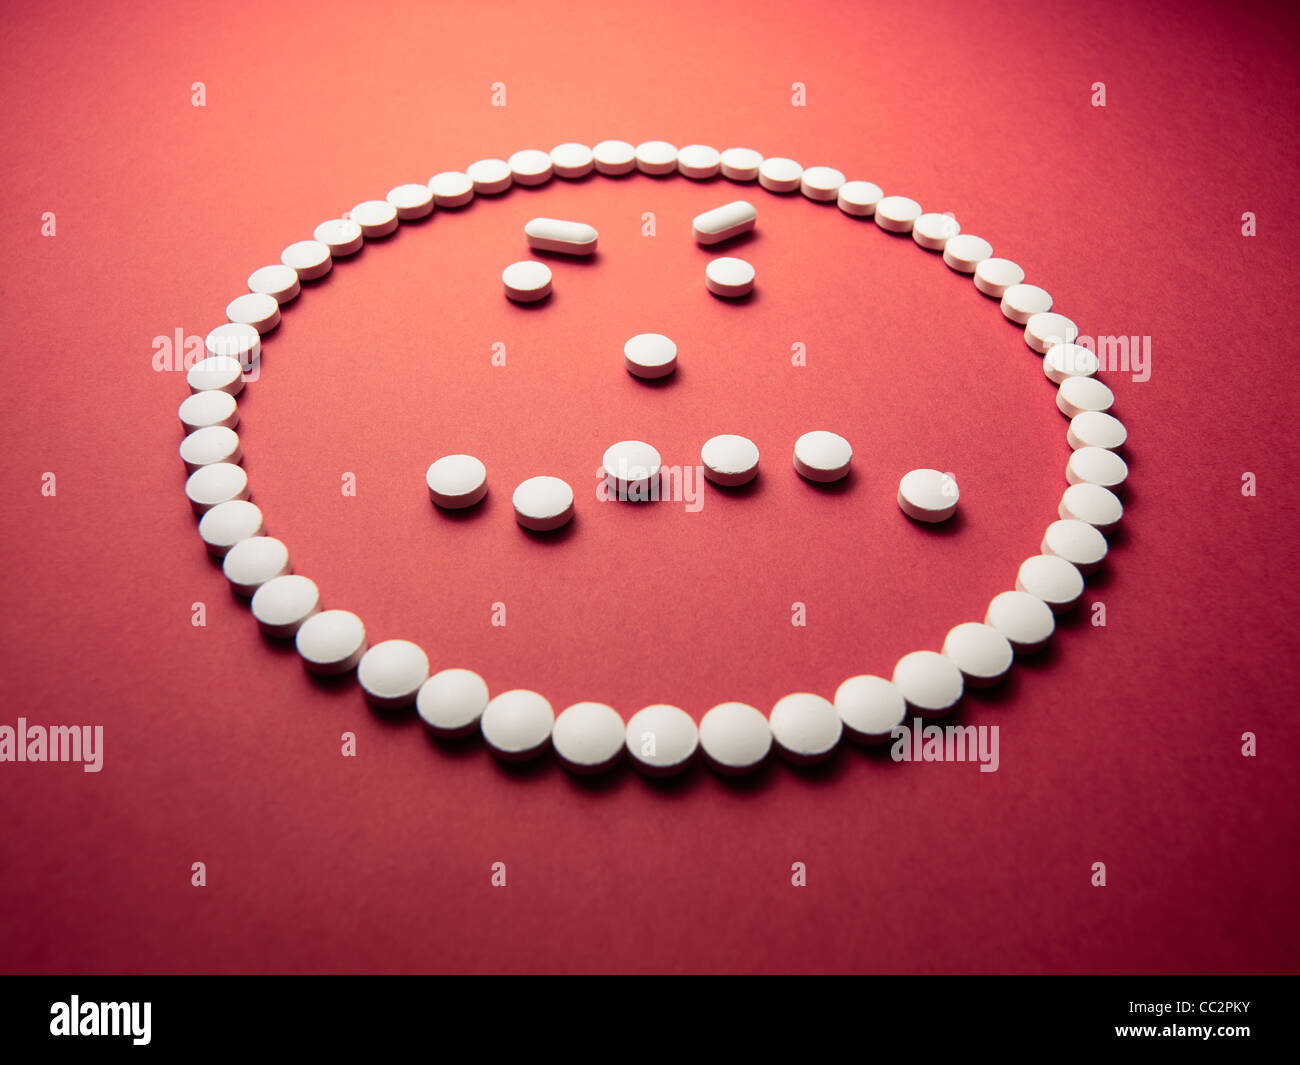 sad face made out of pills and drugs - Stock Image